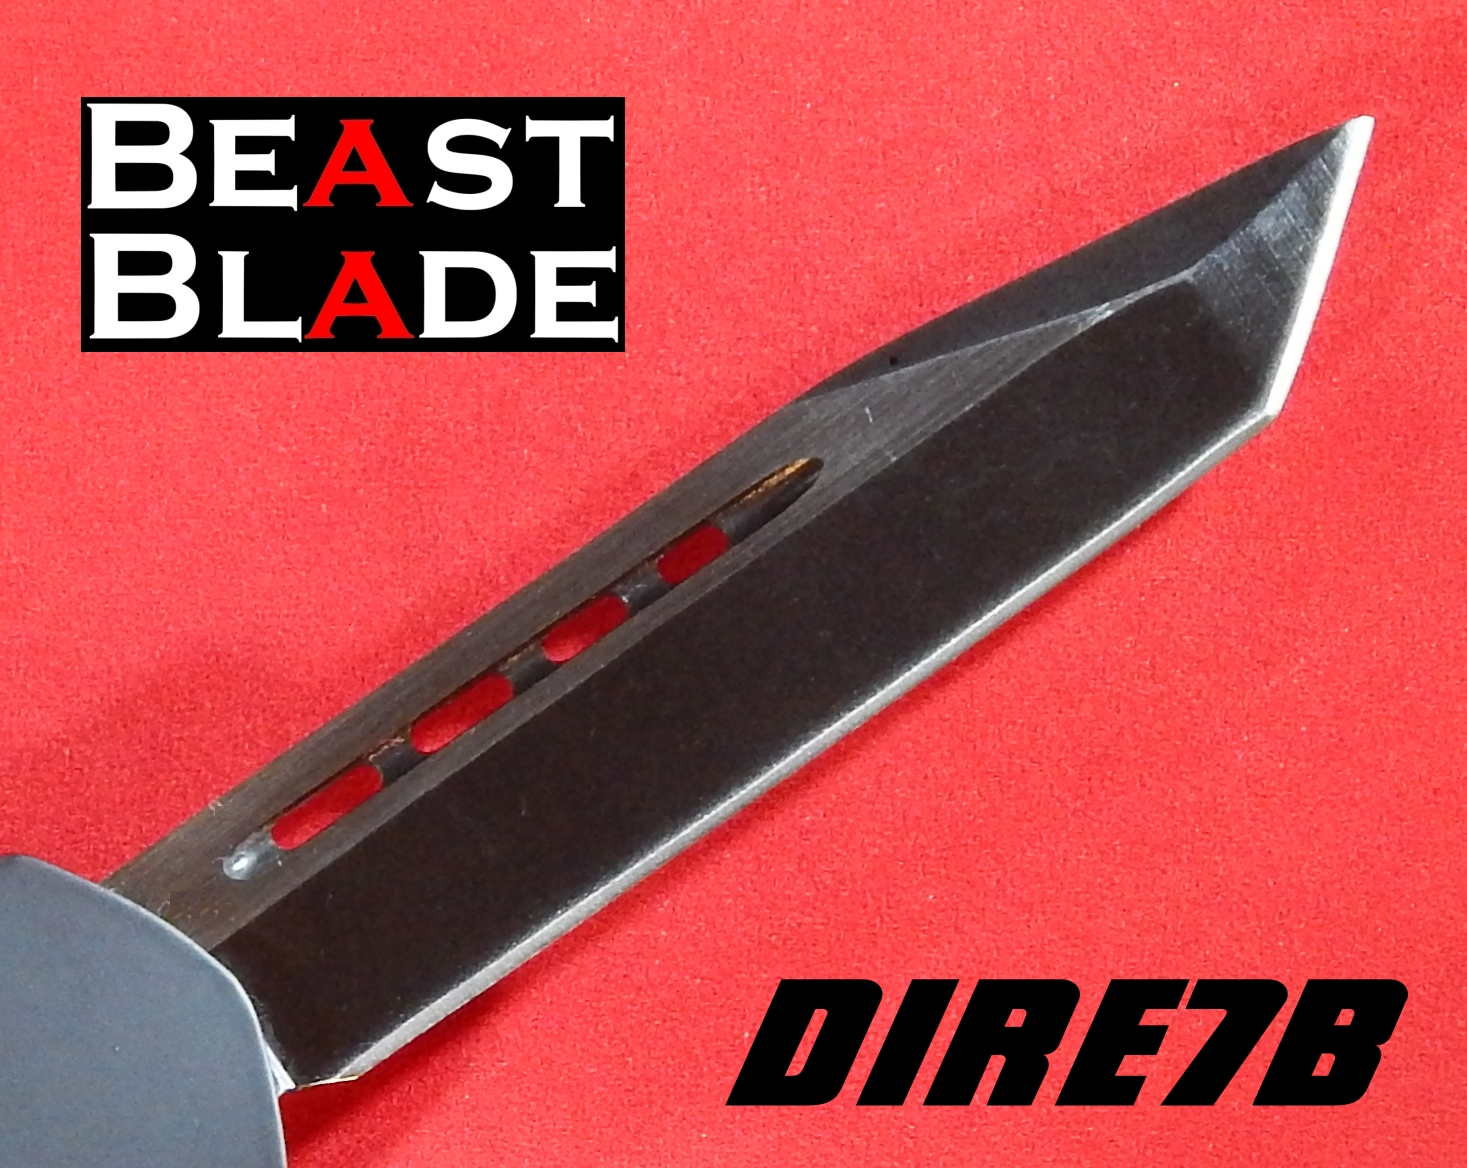 7 Inch Tanto, Straight Blade